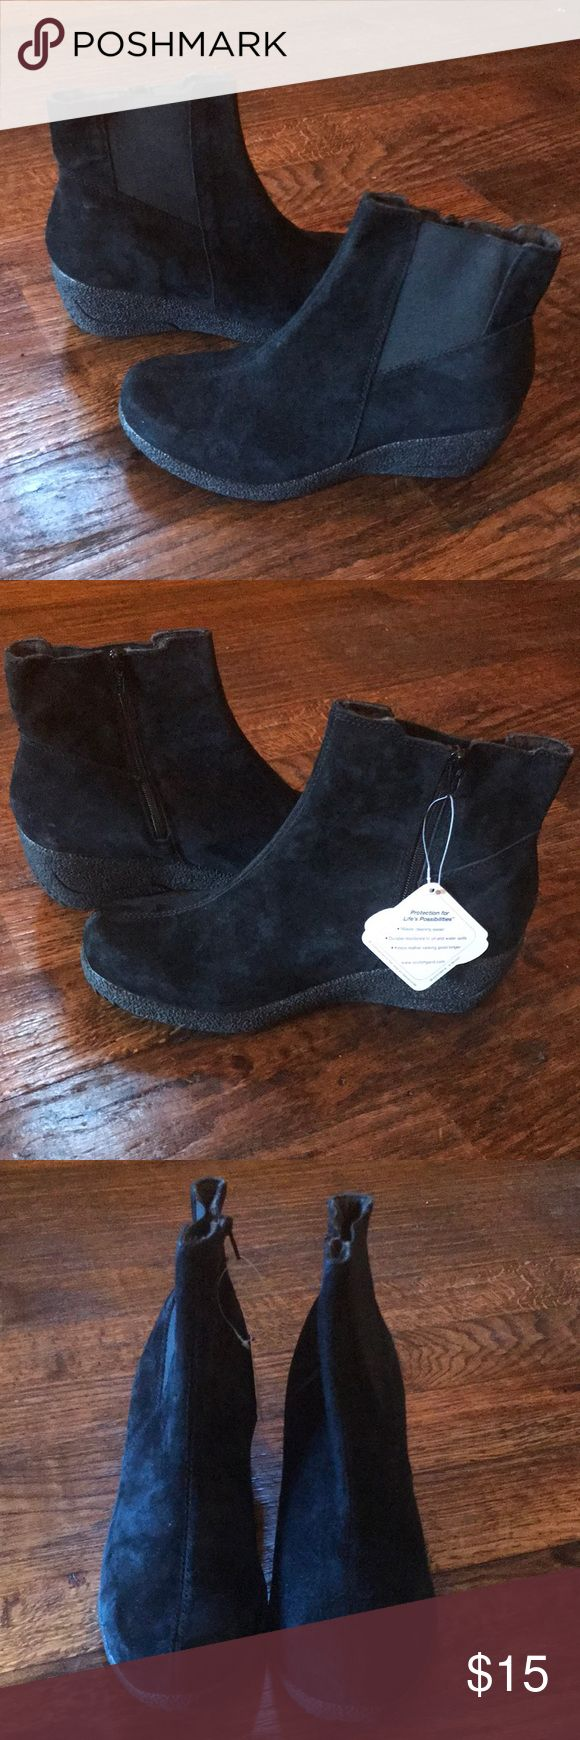 Ankle Boots Brand New Women's Suede Ankle Boots with elastic sides size 8 Propet Shoes Ankle Boots & Booties